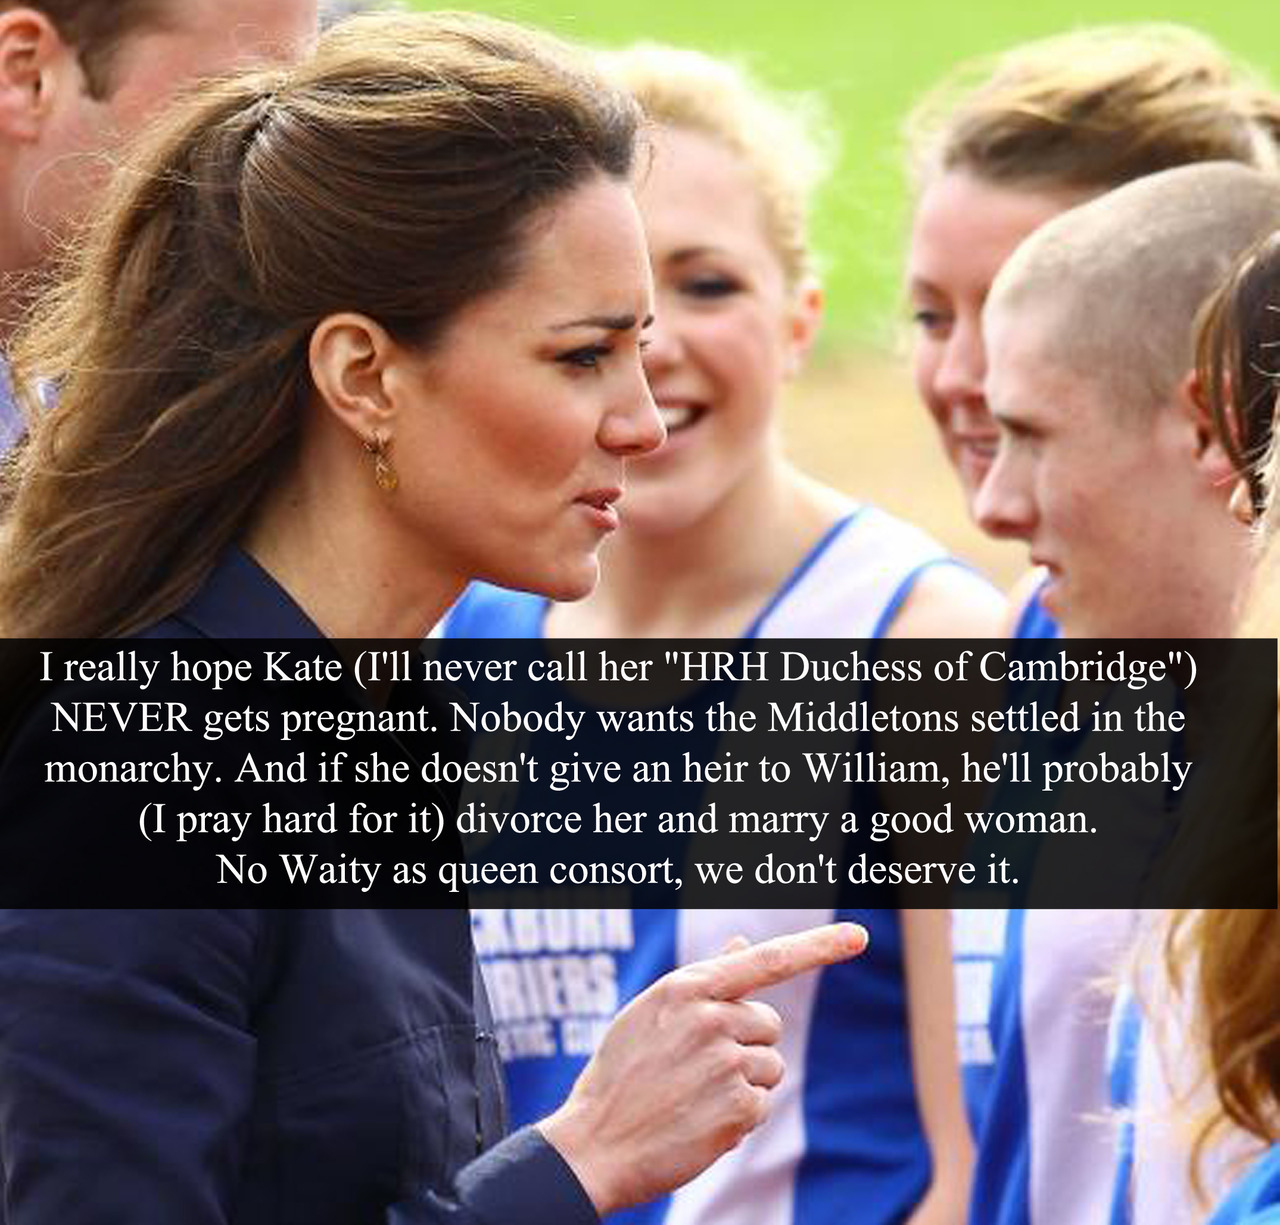 "(Post by Varya) ""I really hope Kate (I'll never call her ""HRH Duchess of Cambridge"") NEVER gets pregnant. Nobody wants the Middletons settled in the monarchy. And if she doesn't give an heir to William, he'll probably (I pray hard for it) divorce her and marry a good woman. No Waity as queen consort, we don't deserve it."" - Submitted by Anonymous"